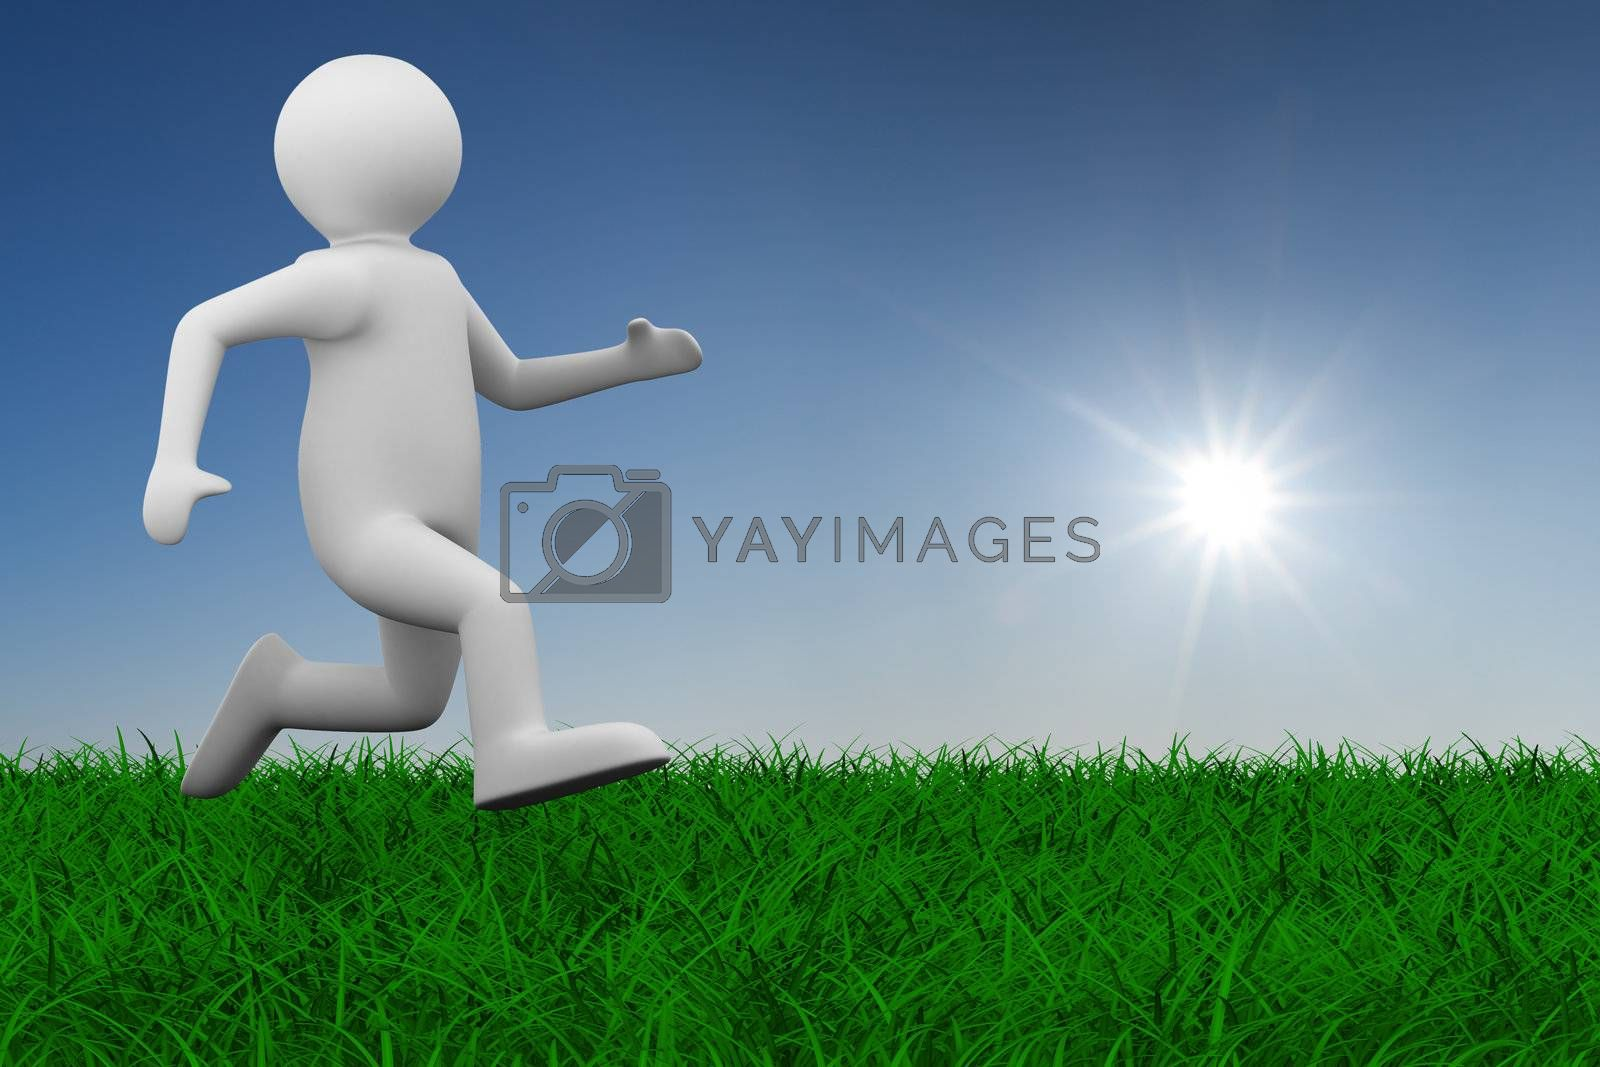 Royalty free image of running person on grass. Isolated 3D image by ISerg